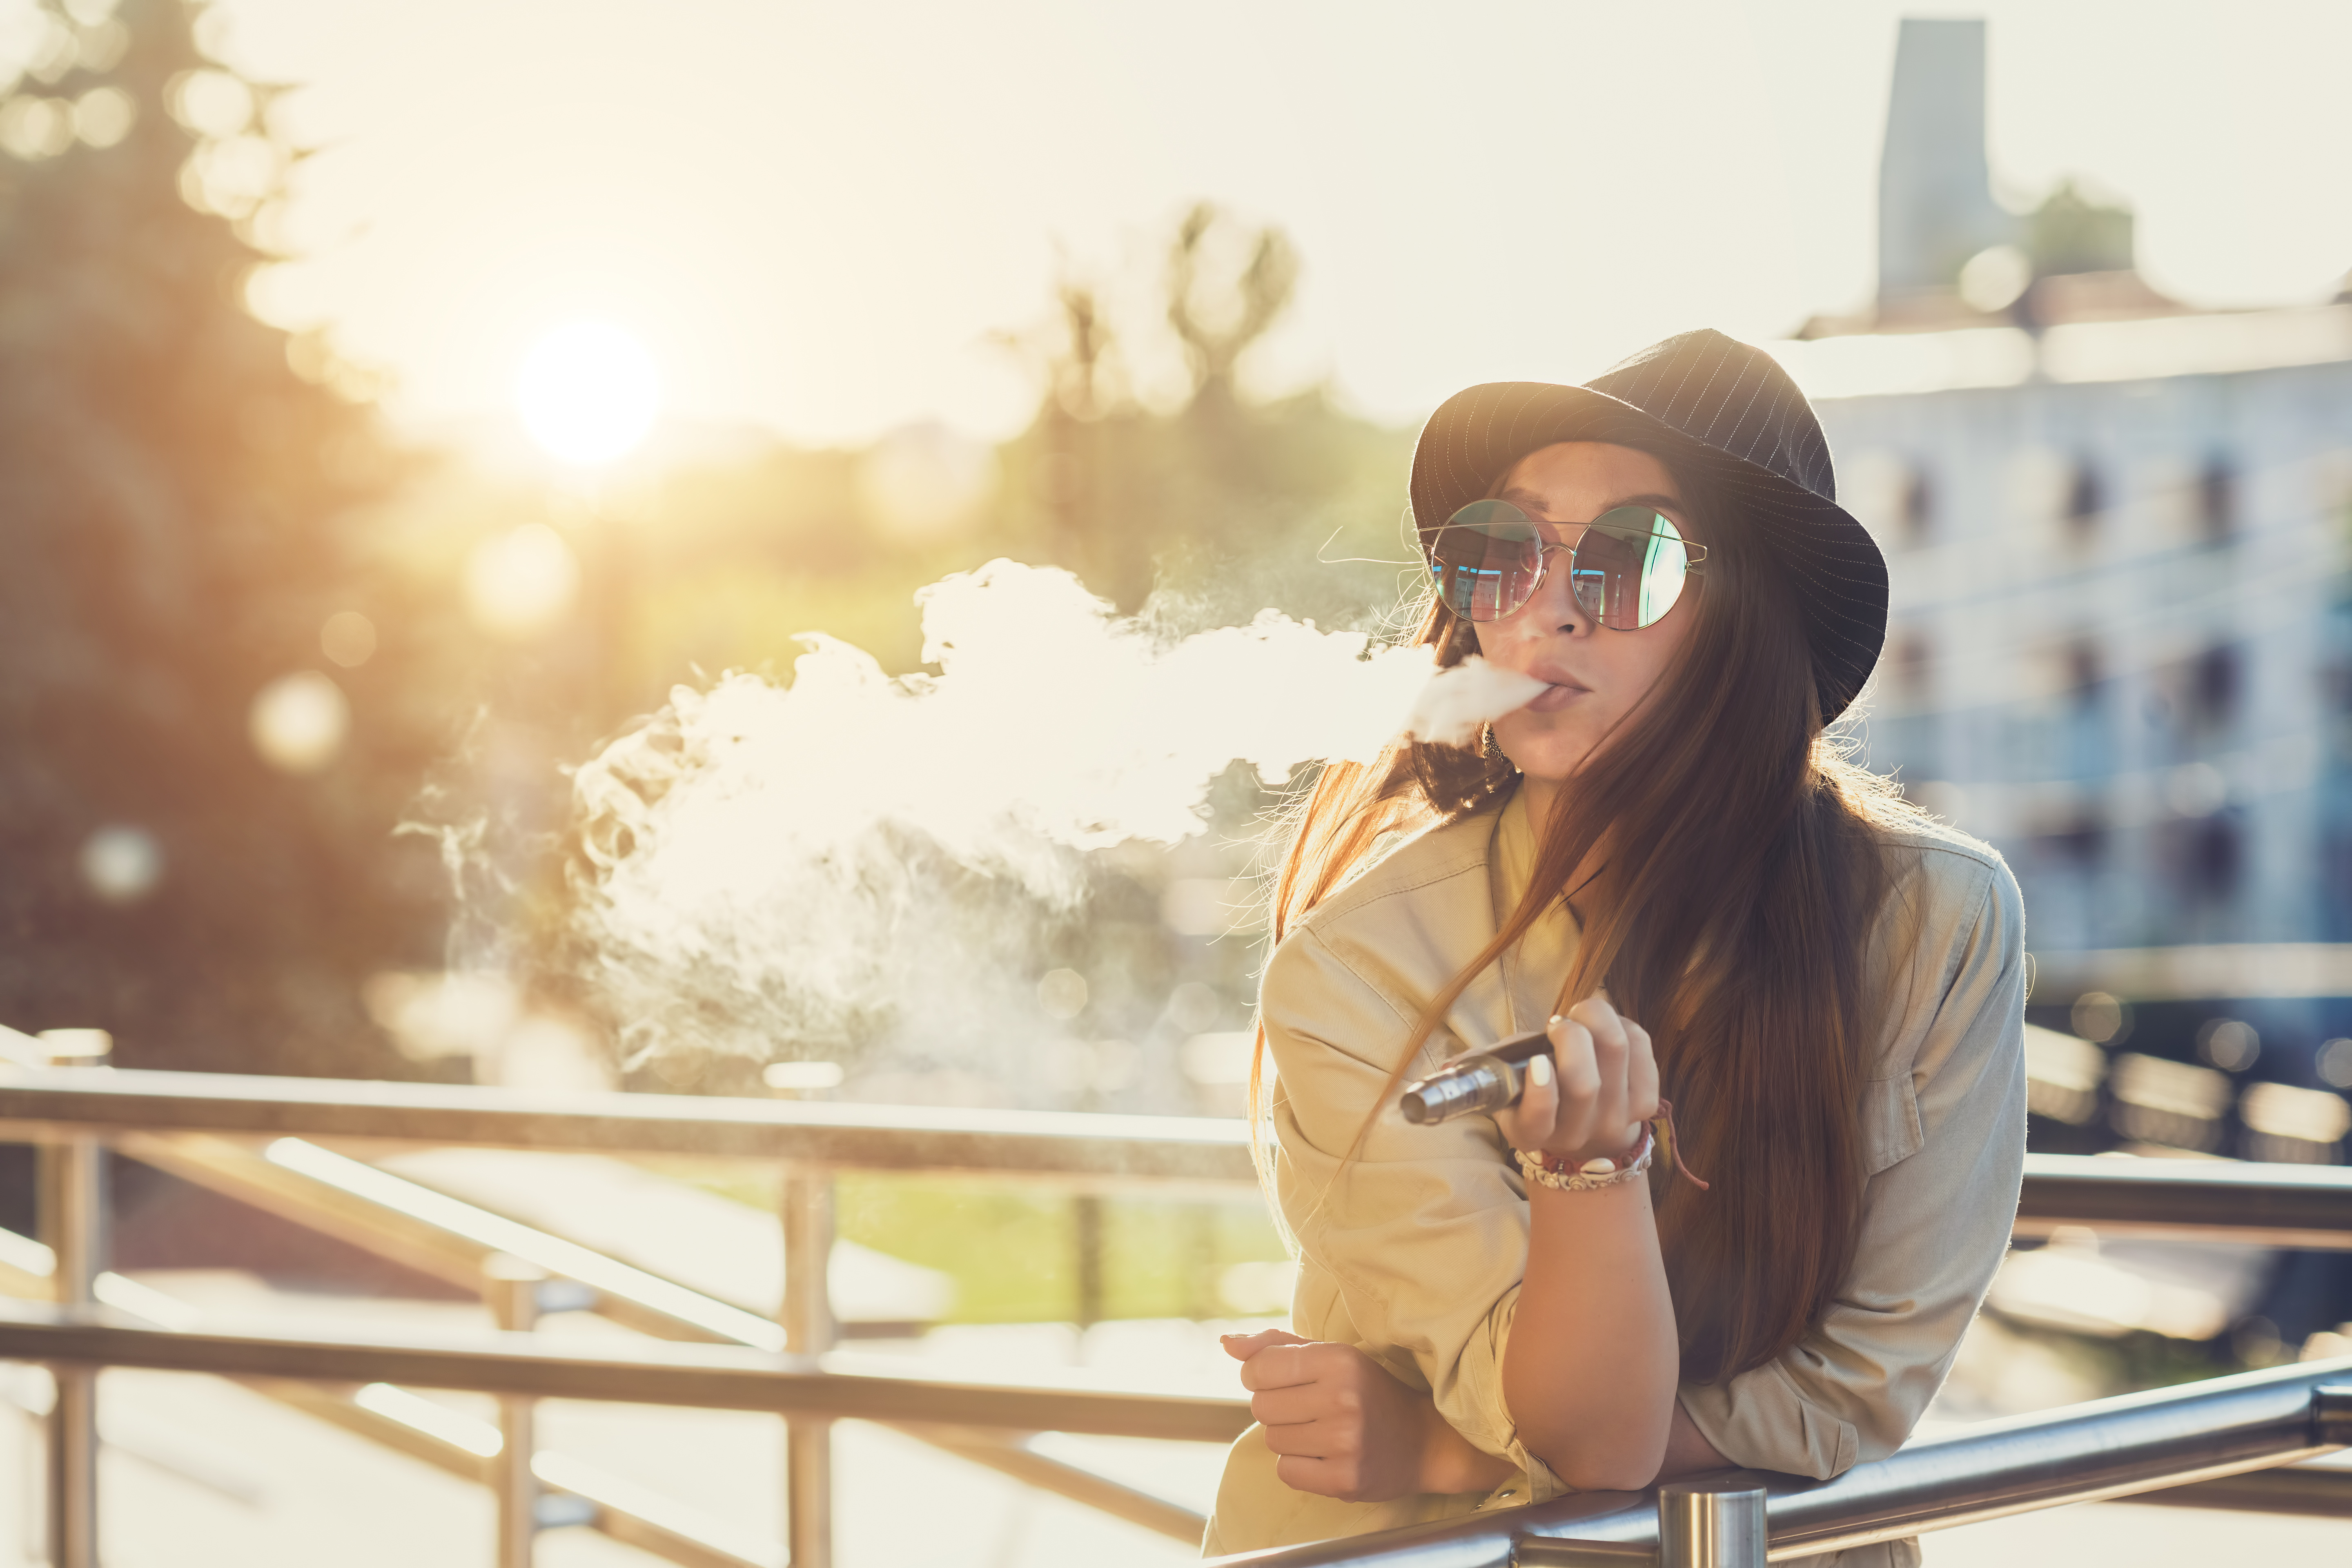 Vaping is more effective for quitting smoking than nicotine